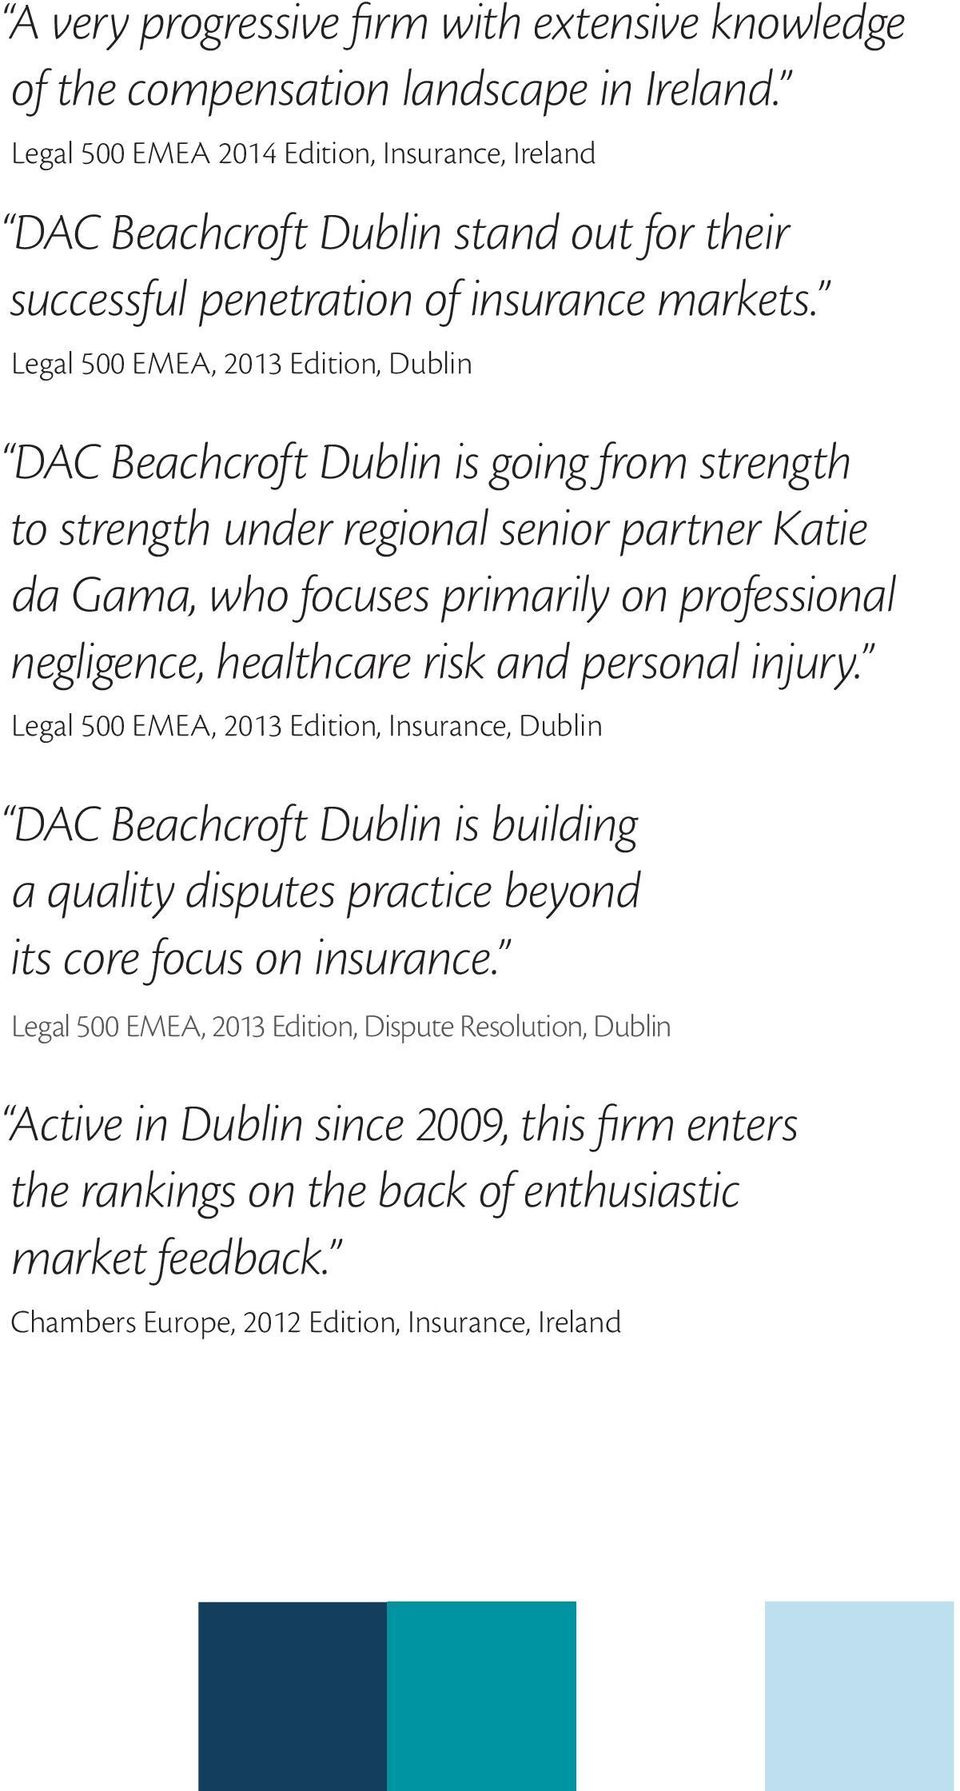 Legal 500 EMEA, 2013 Edition, Dublin DAC Beachcroft Dublin is going from strength to strength under regional senior partner Katie da Gama, who focuses primarily on professional negligence, healthcare